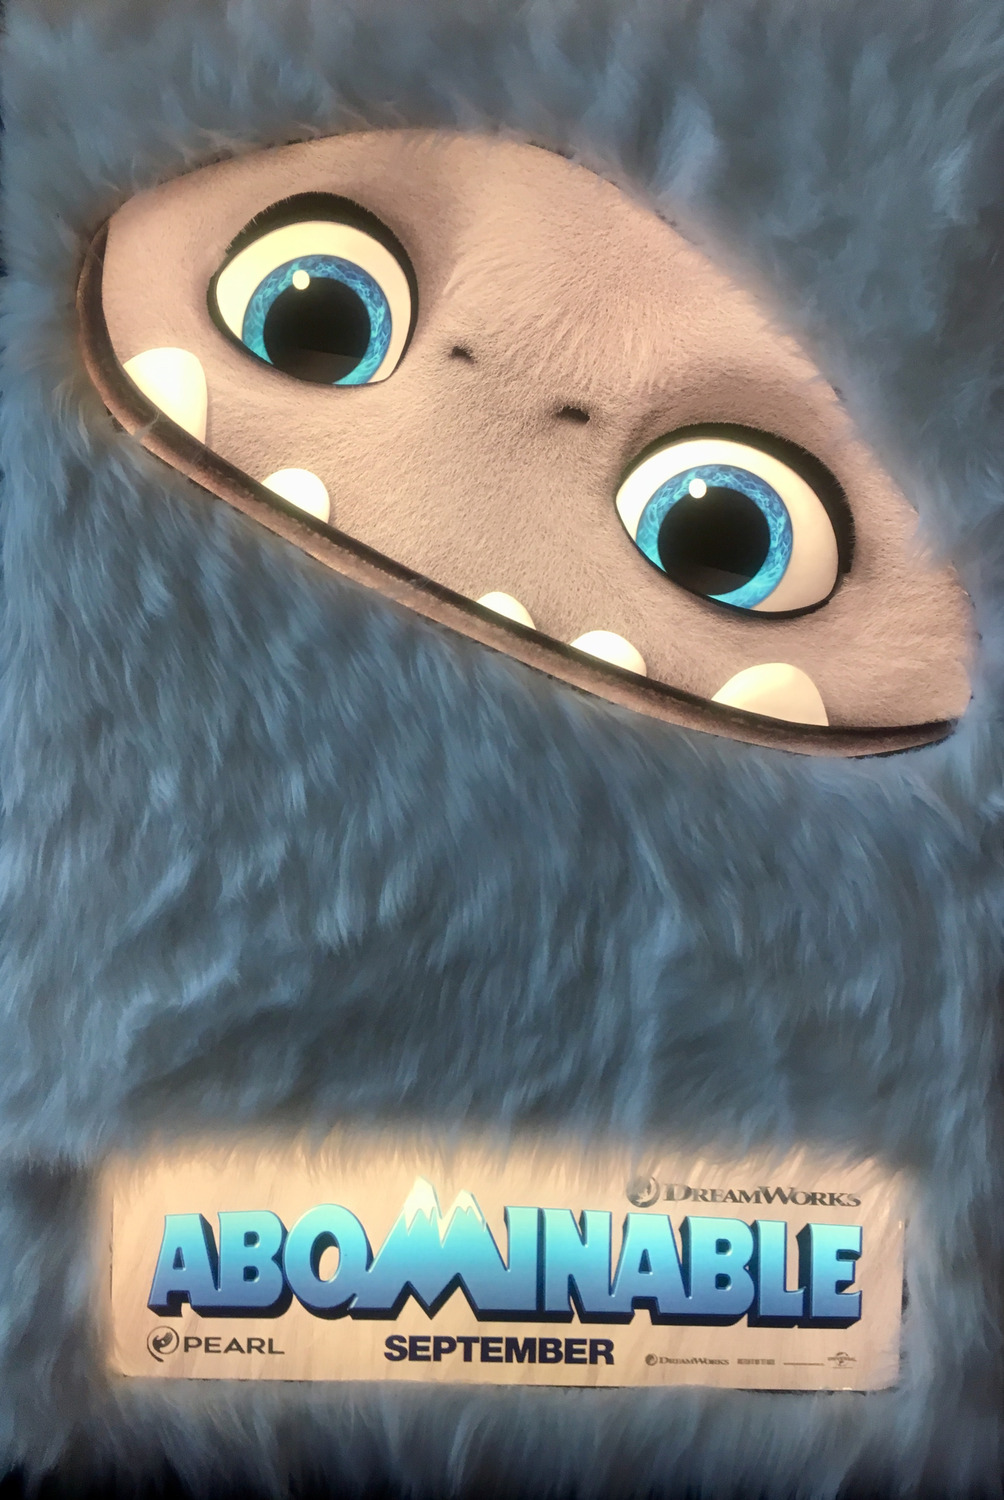 First Abominable Poster Released Animated Views